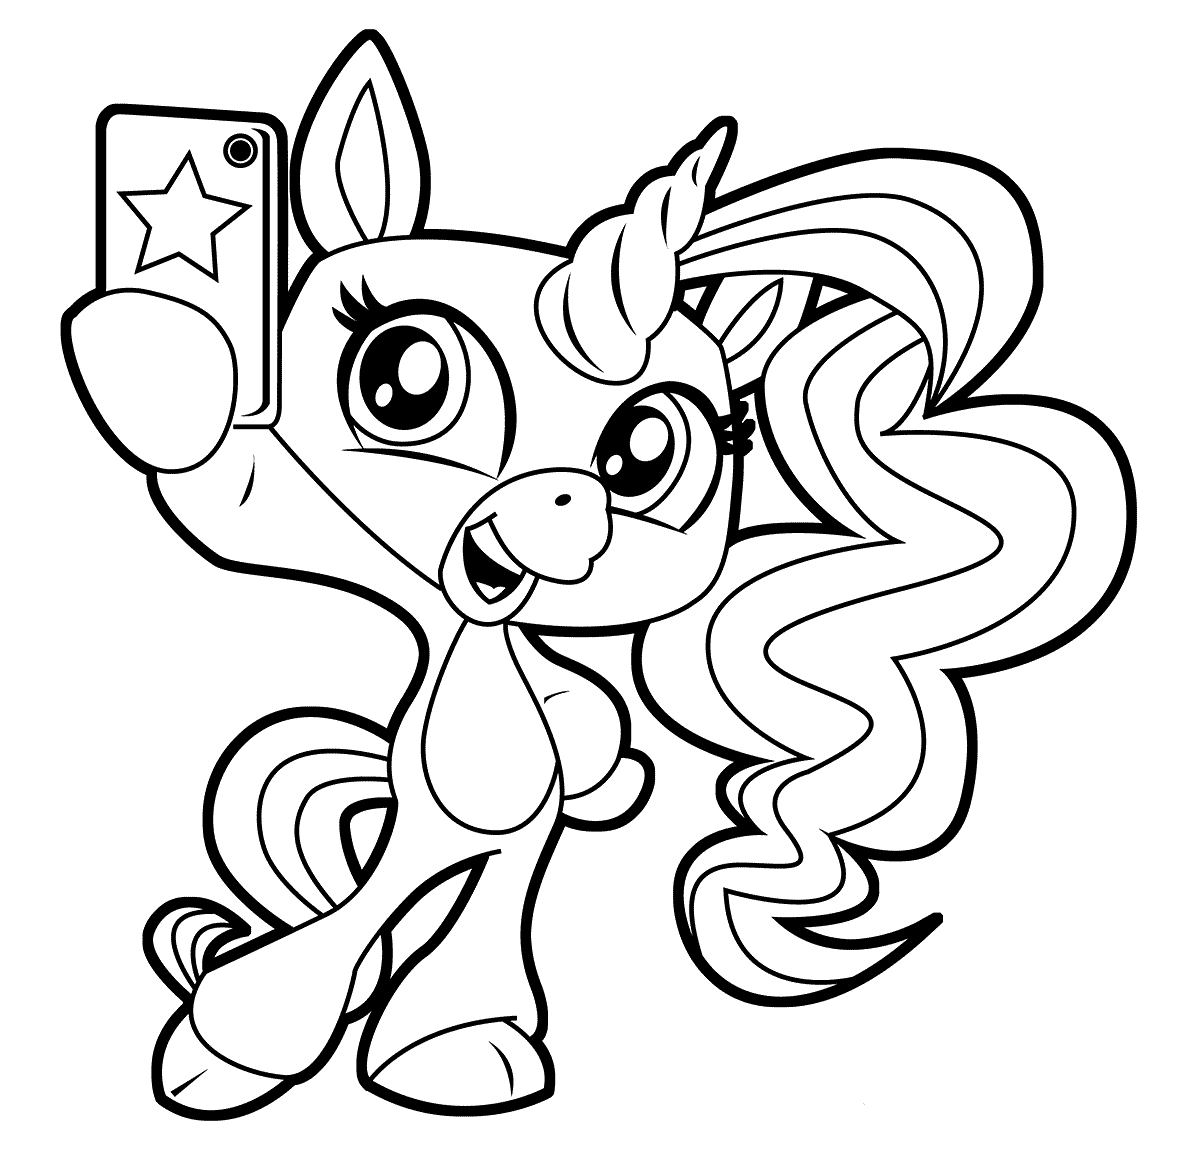 Unicorn Selfie Fingerlings Coloring Pages